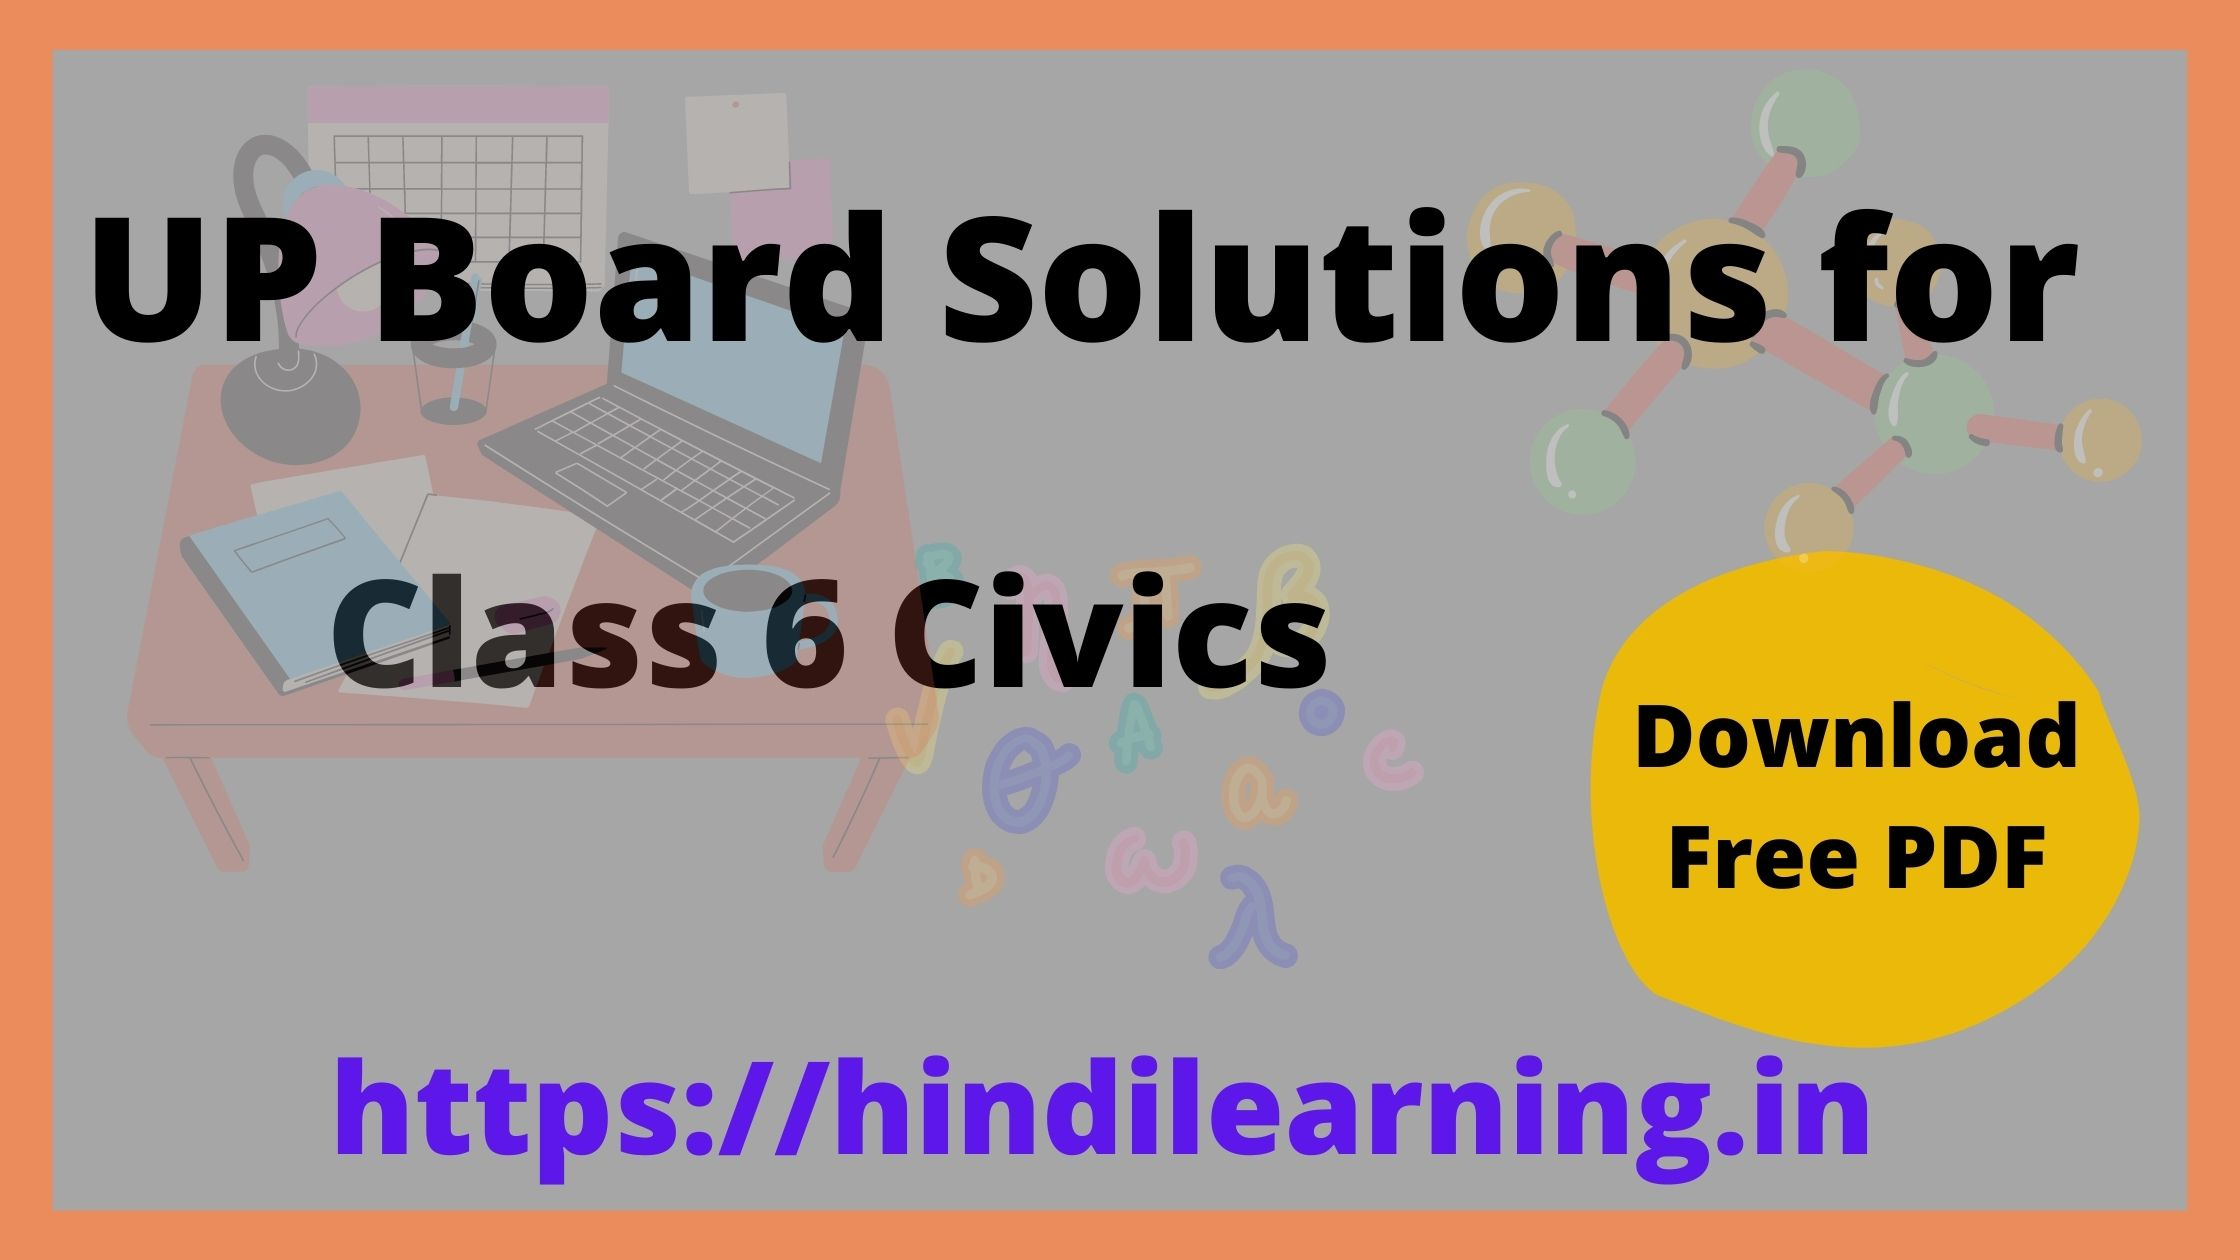 UP Board Solutions for Class 6 Civics (नागरिक शास्त्र)